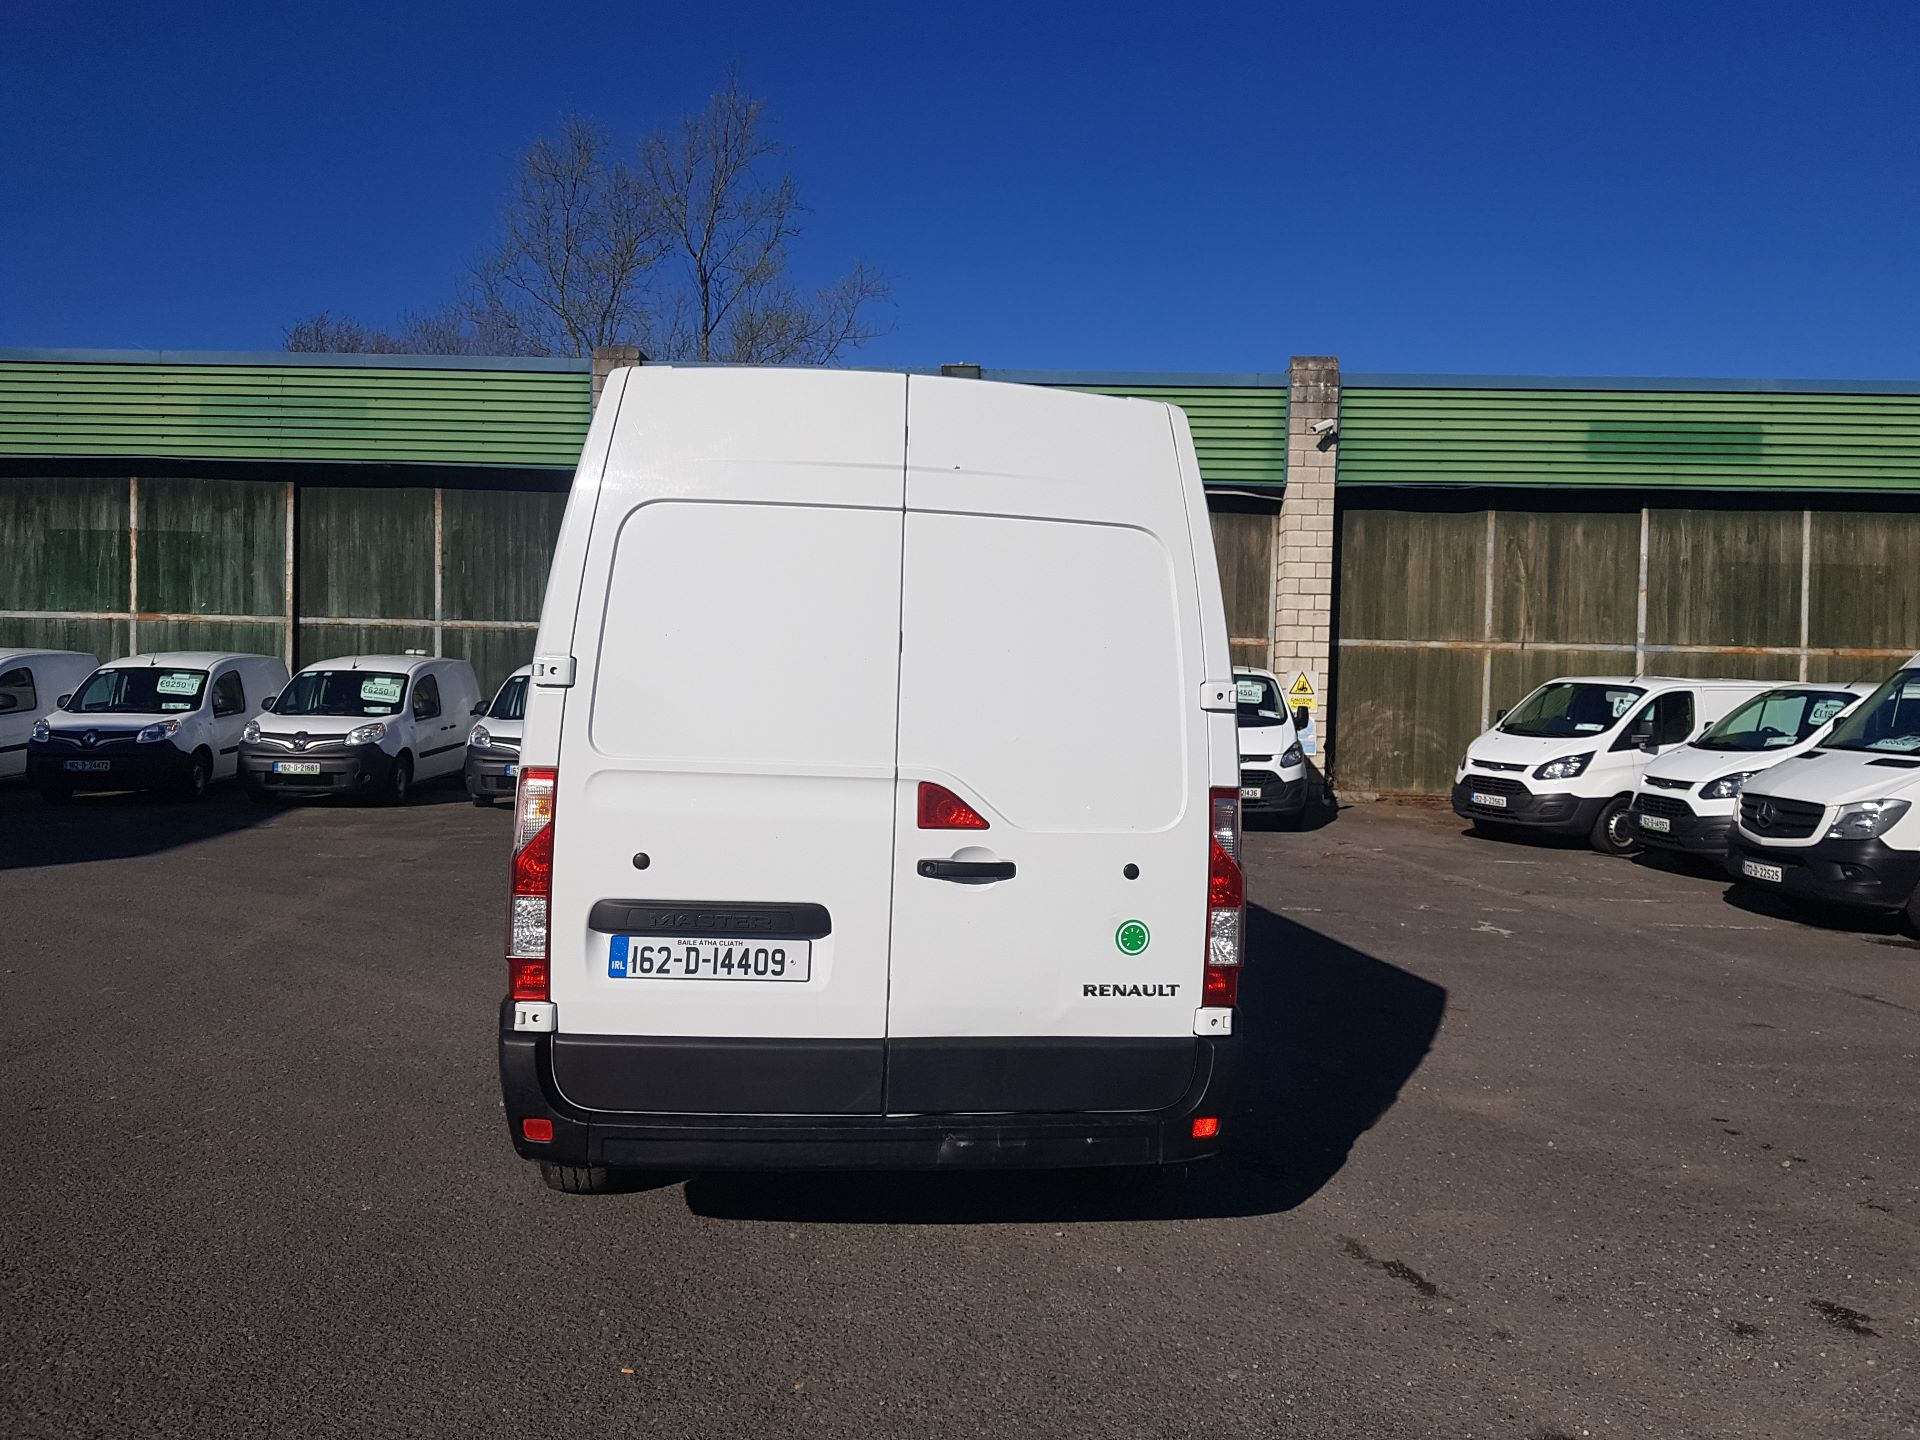 2016 Renault Master III FWD LM35 DCI 125 Business 3DR (162D14409) Image 4